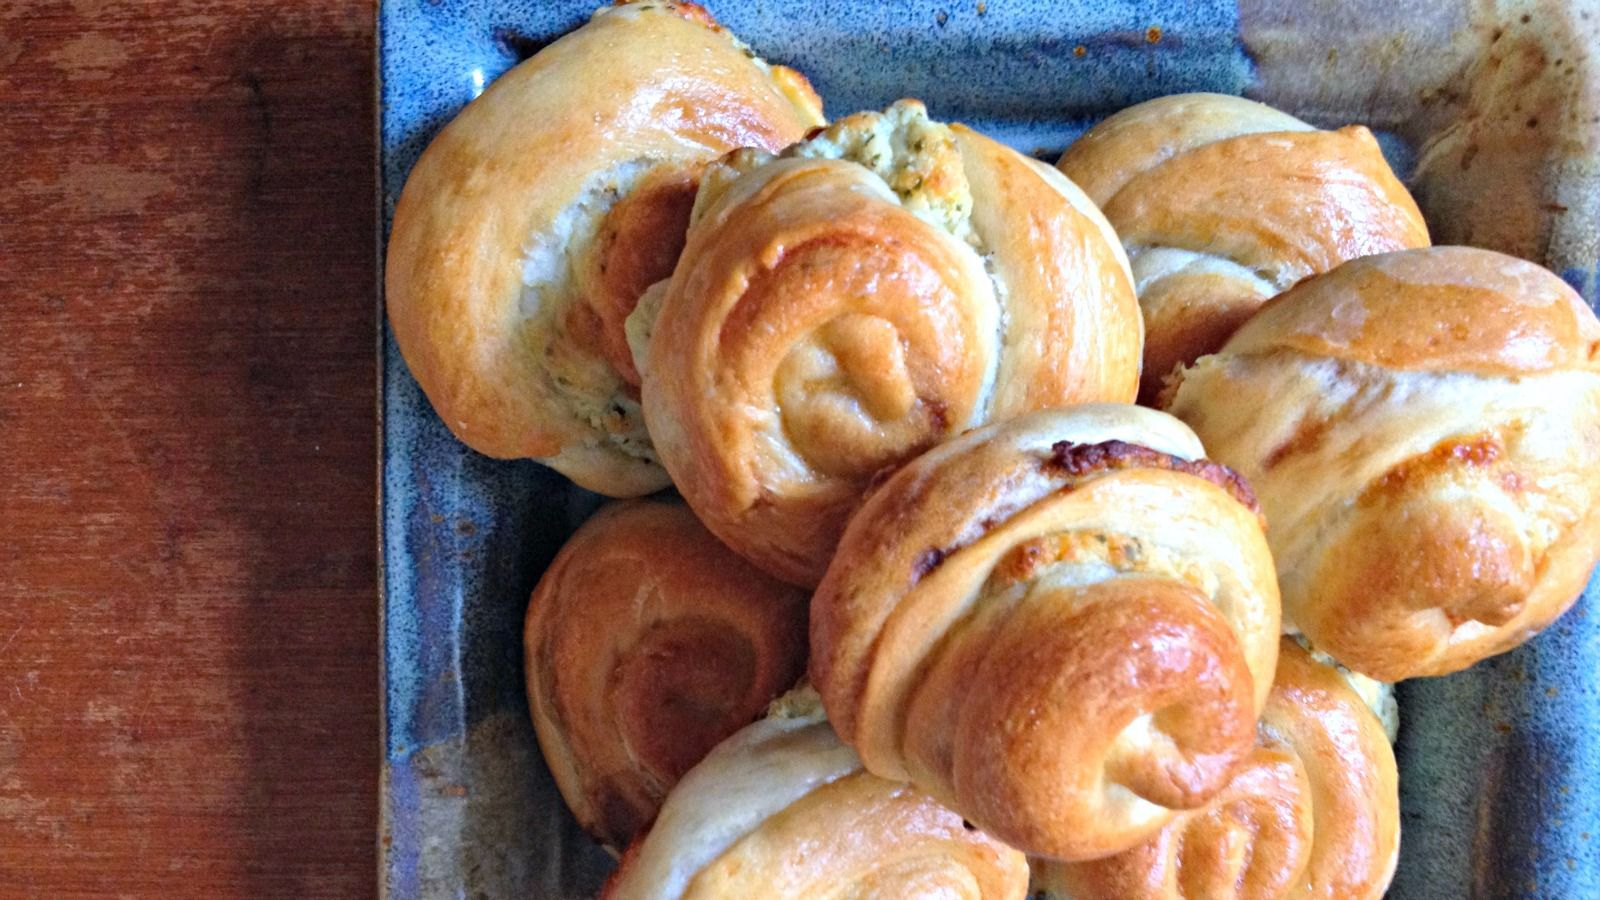 Bulemas are savory Sephardic pastries most often filled with spinach, cheese or eggplant.